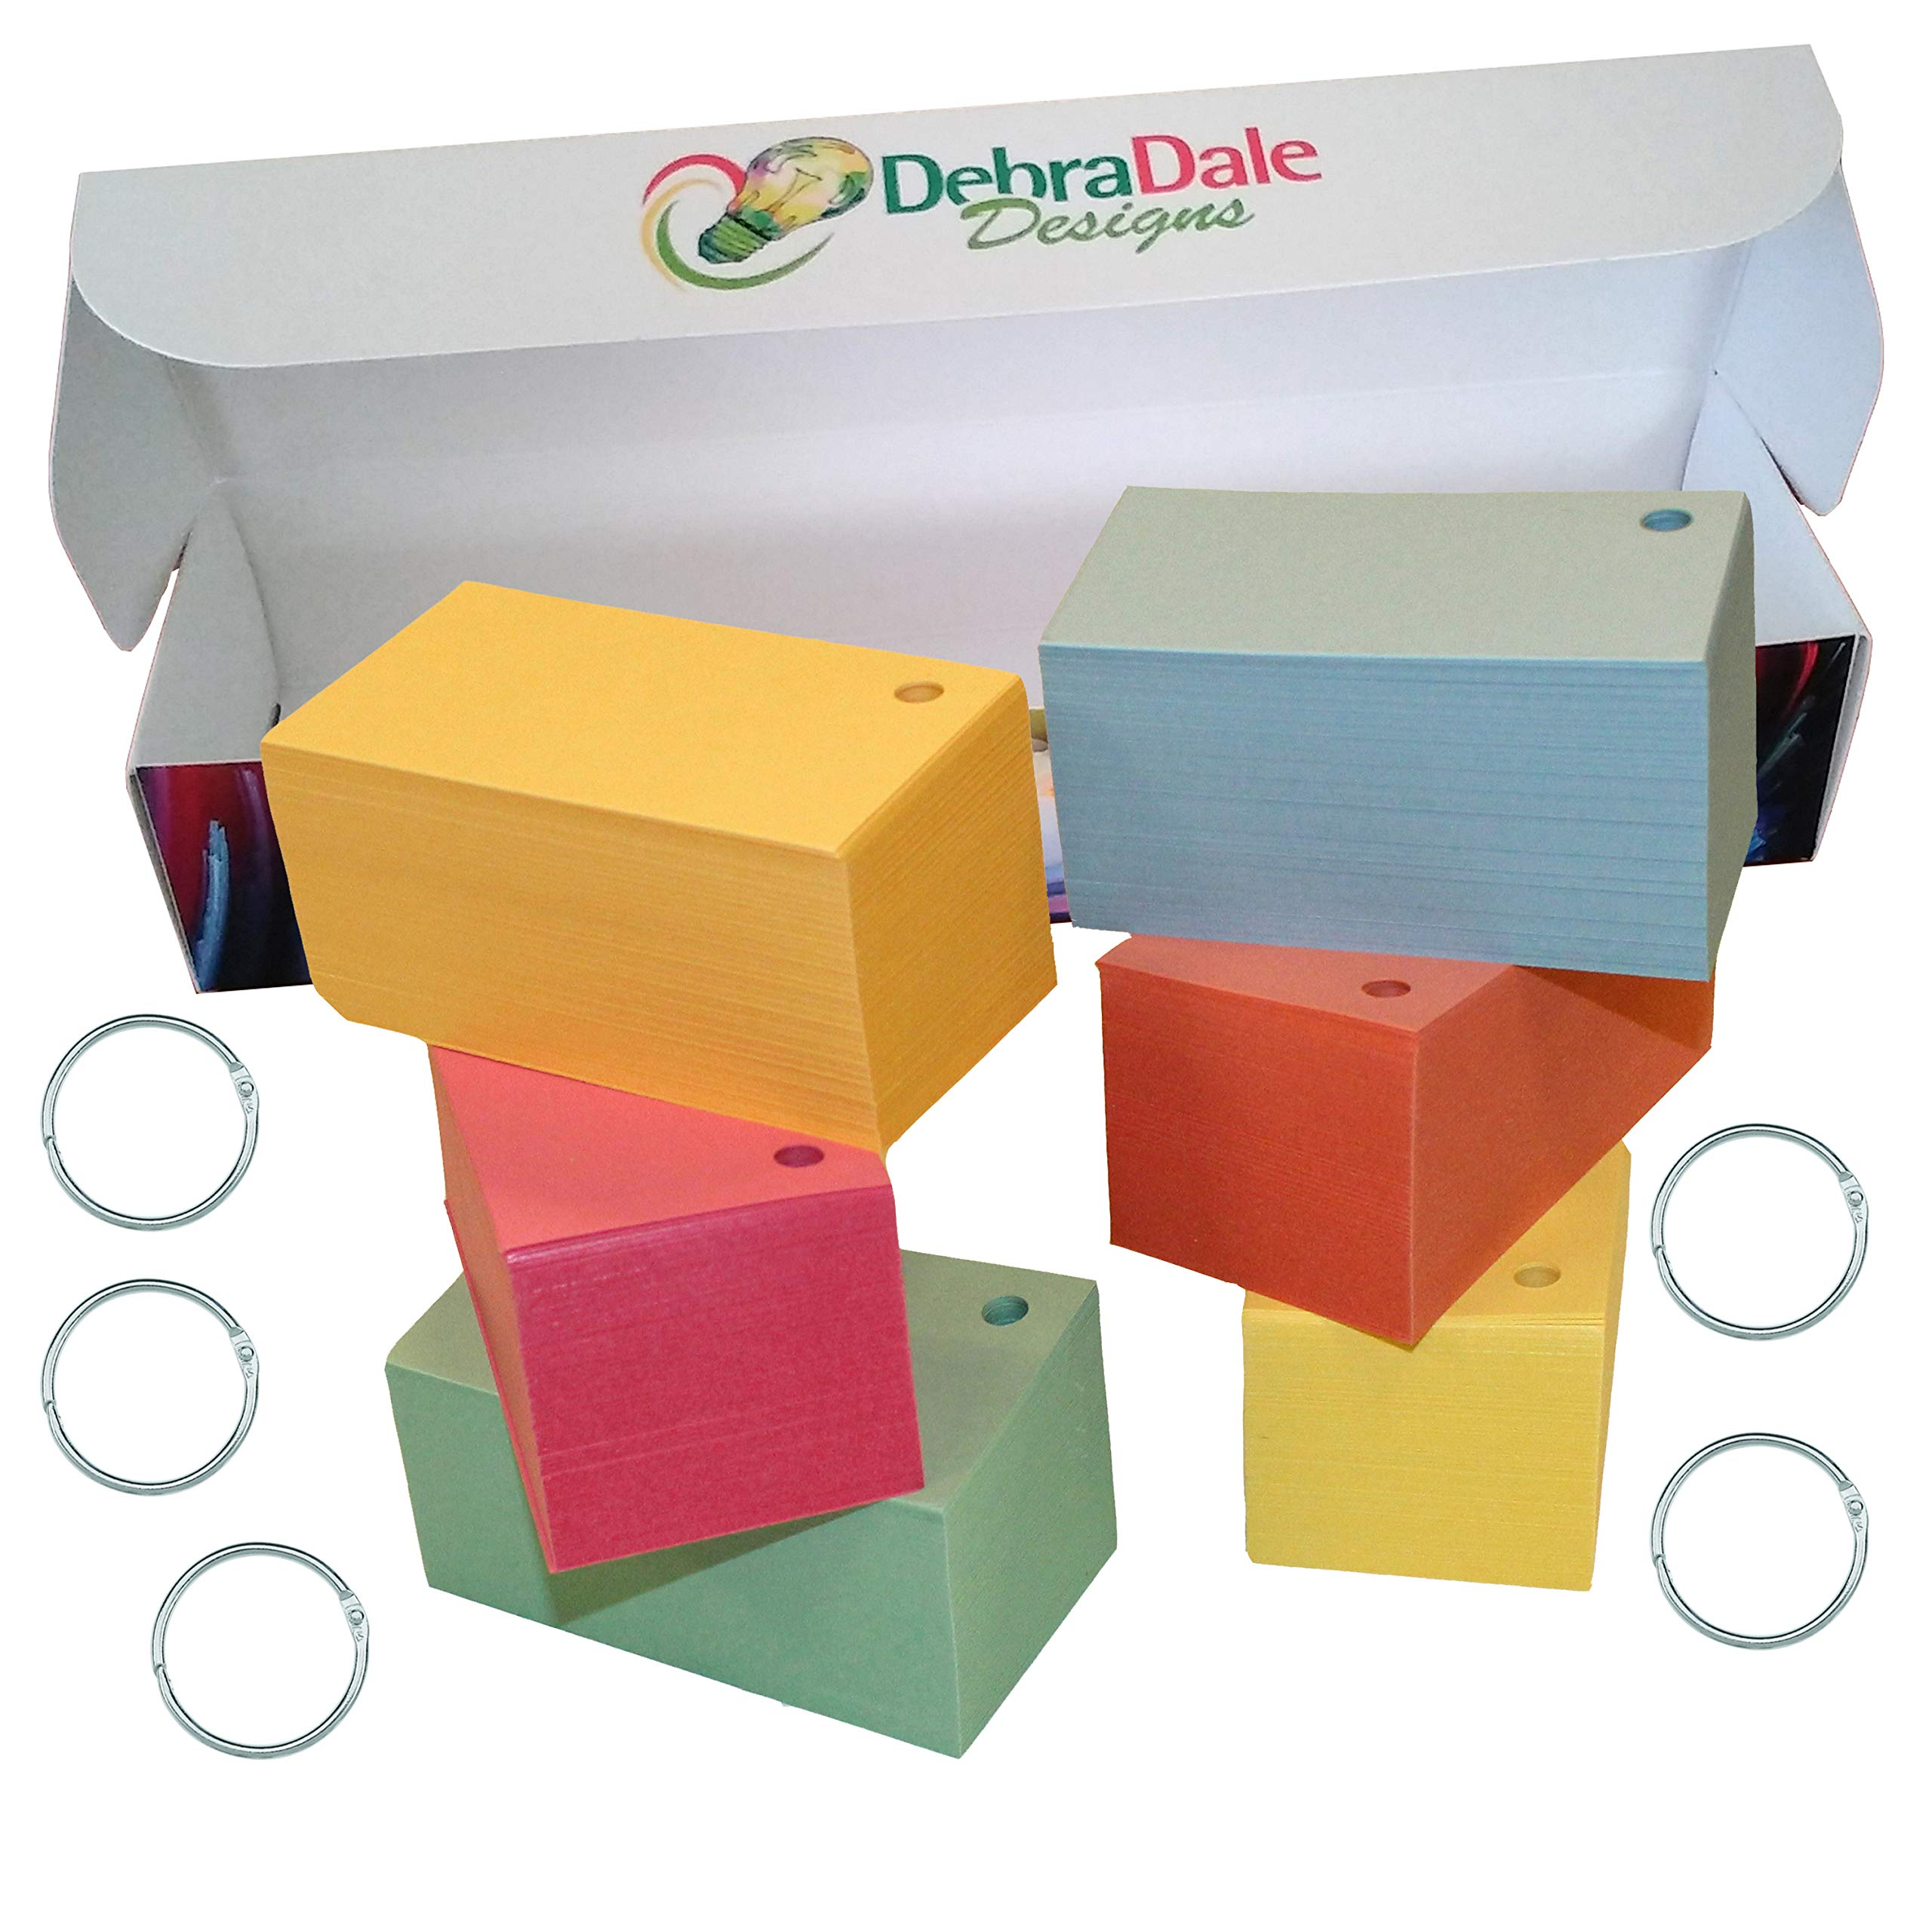 Debra Dale Designs - Standard 110# Index Card Stock - Blank Flash Cards Single Hole Punched with Five (5) Metal Binder Rings - 3.5'' x 2'' Inches - Six (6) Pastel Colors - Storage Filing Box of 1,100 by DEBRADALE DESIGNS